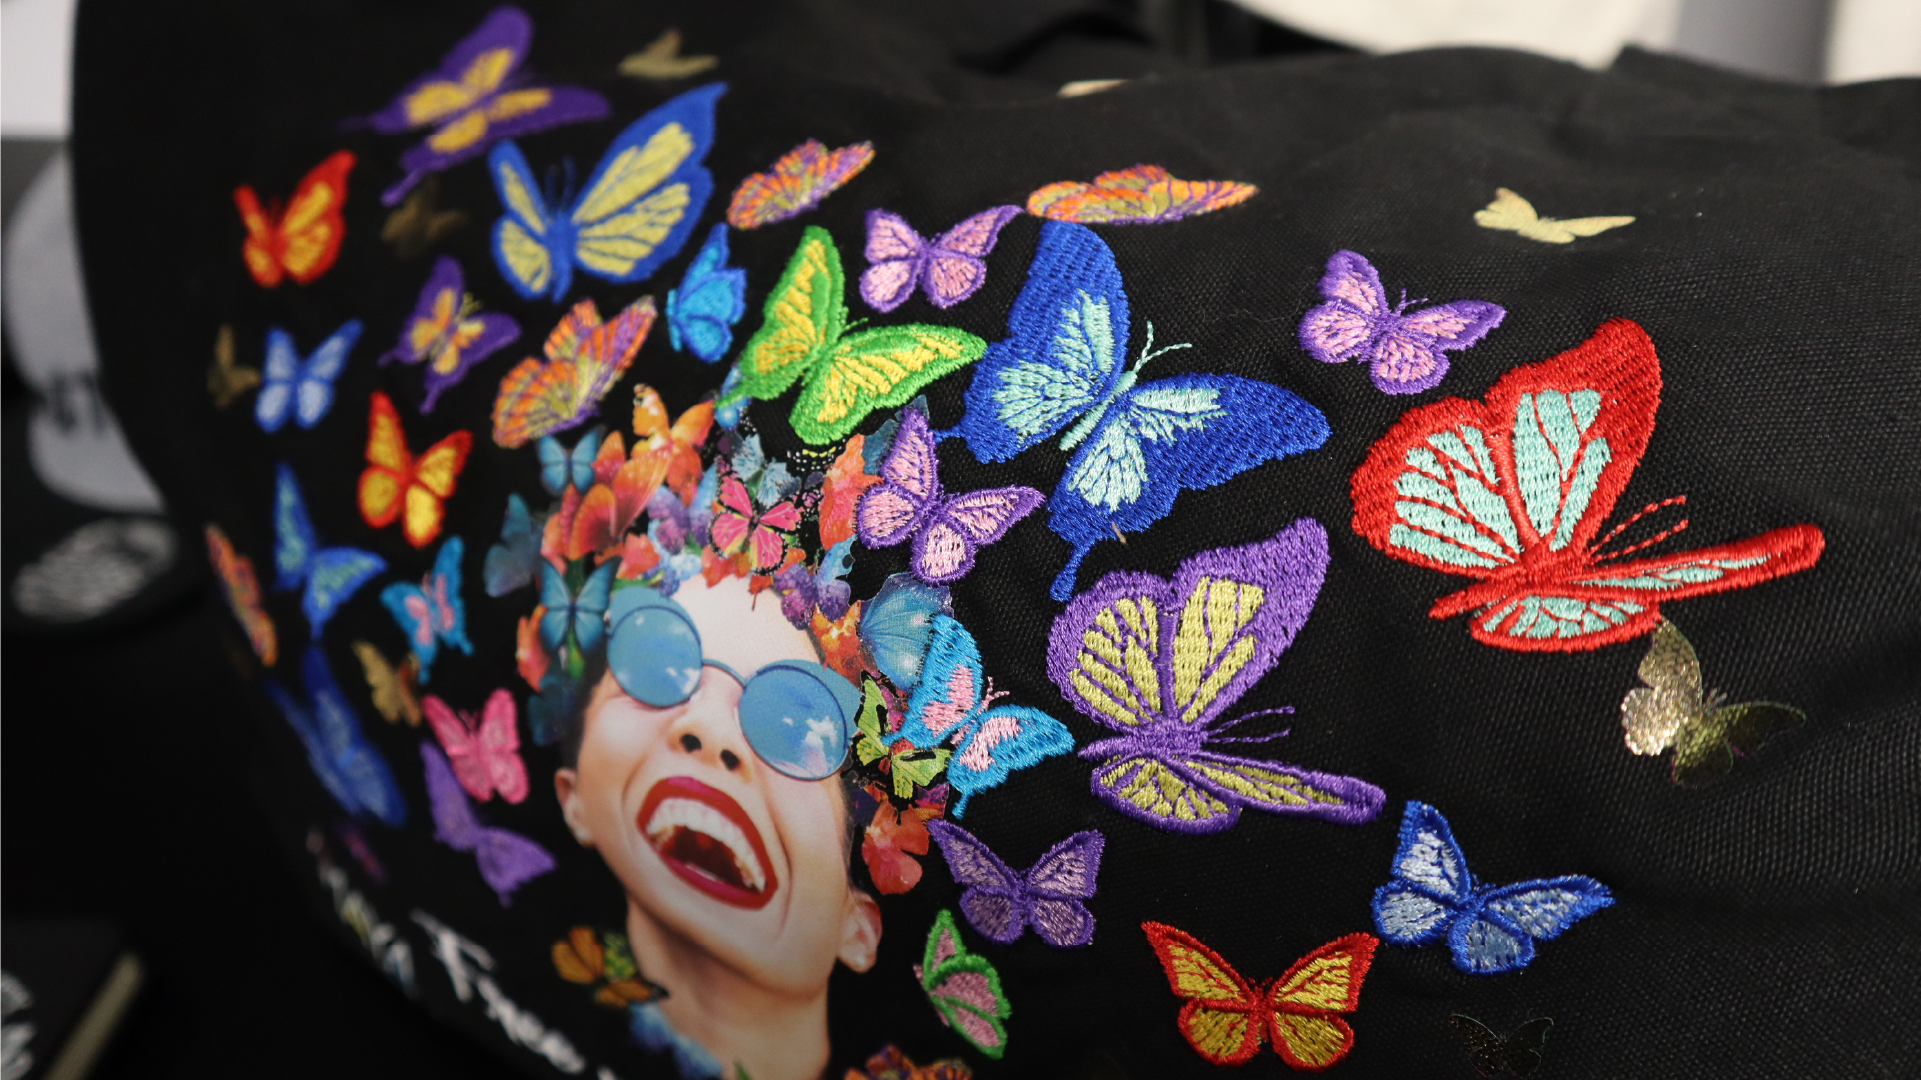 Black Tote bag with face of a woman and embroidered butterflies using Melco Embroidery Machine